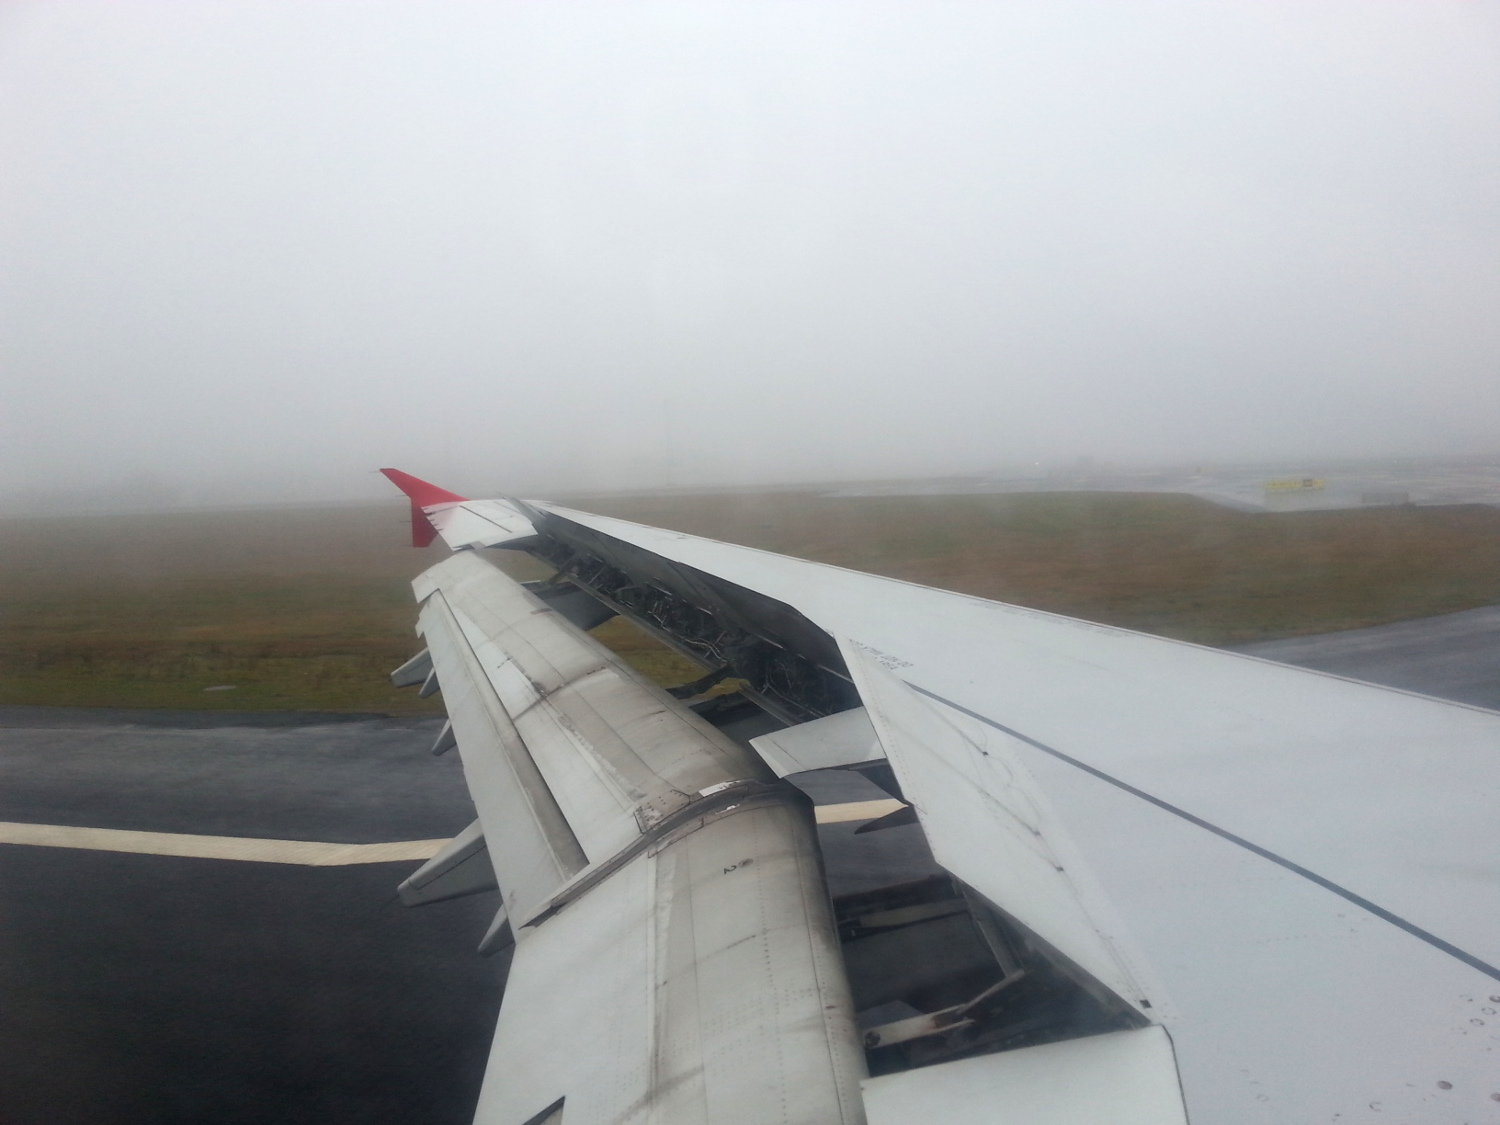 Fog at OIslo airport1